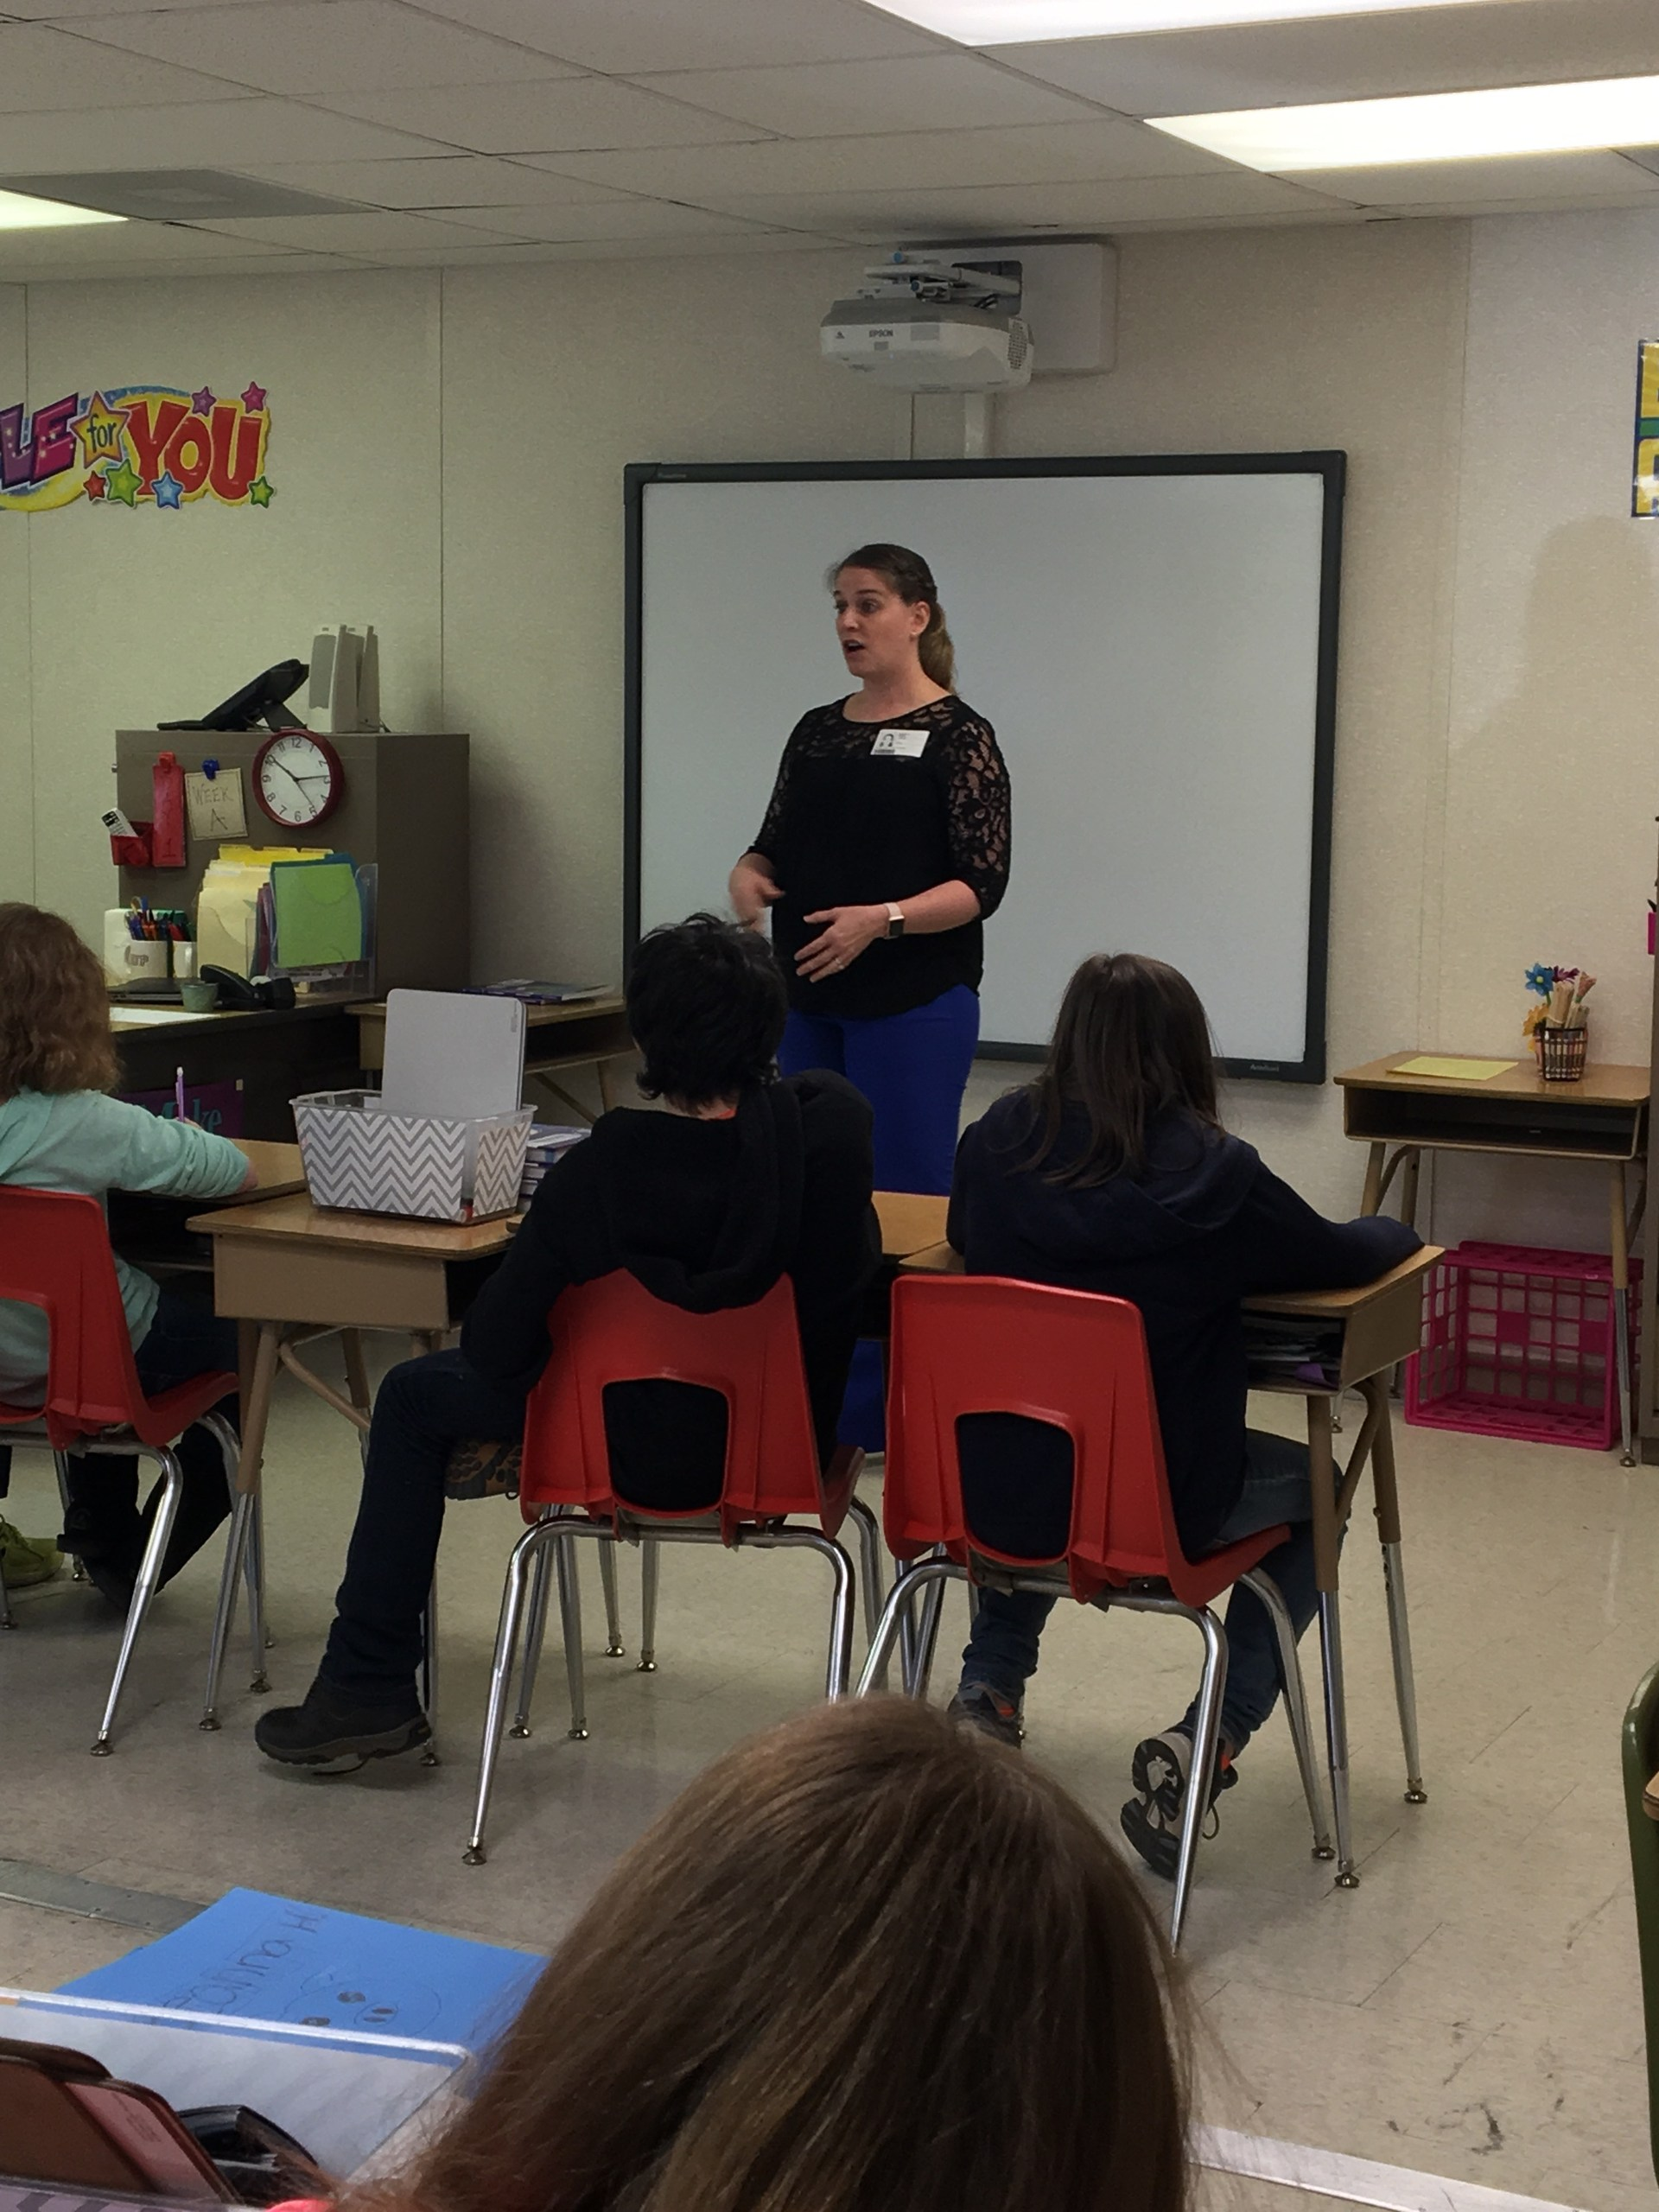 Sixth Grade students sit in desks and listen to guest speaker in front of class.